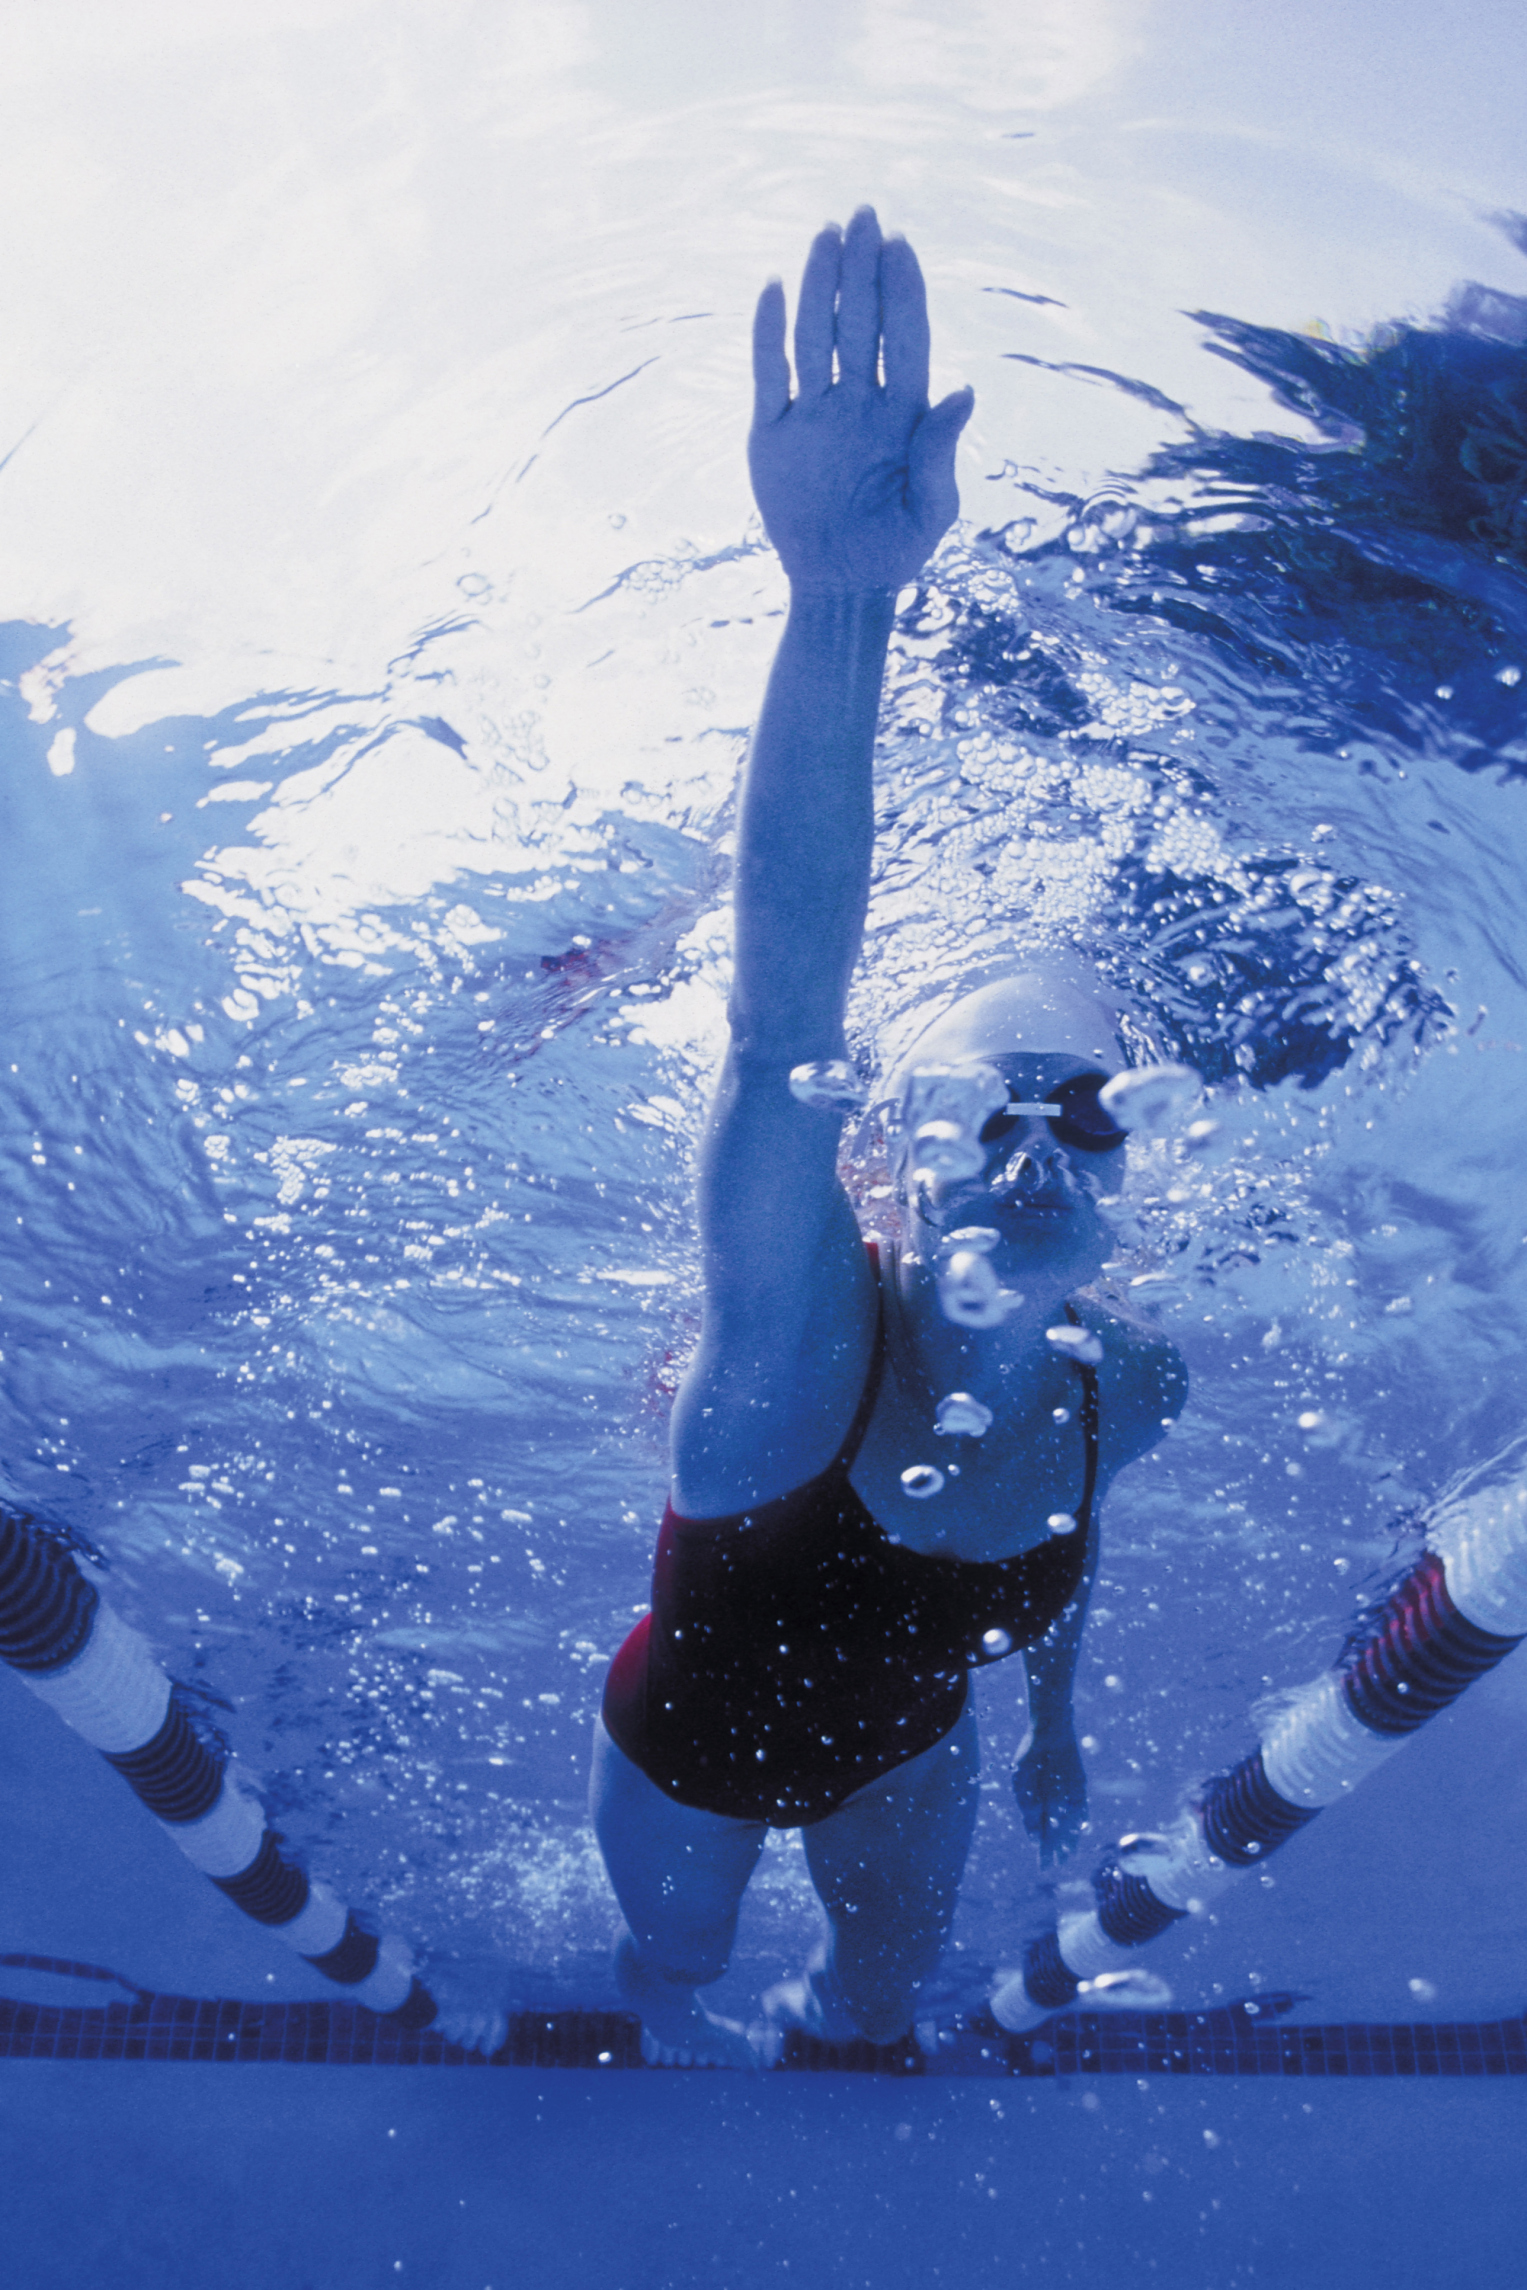 does losing body weight make me swim faster? | healthfully